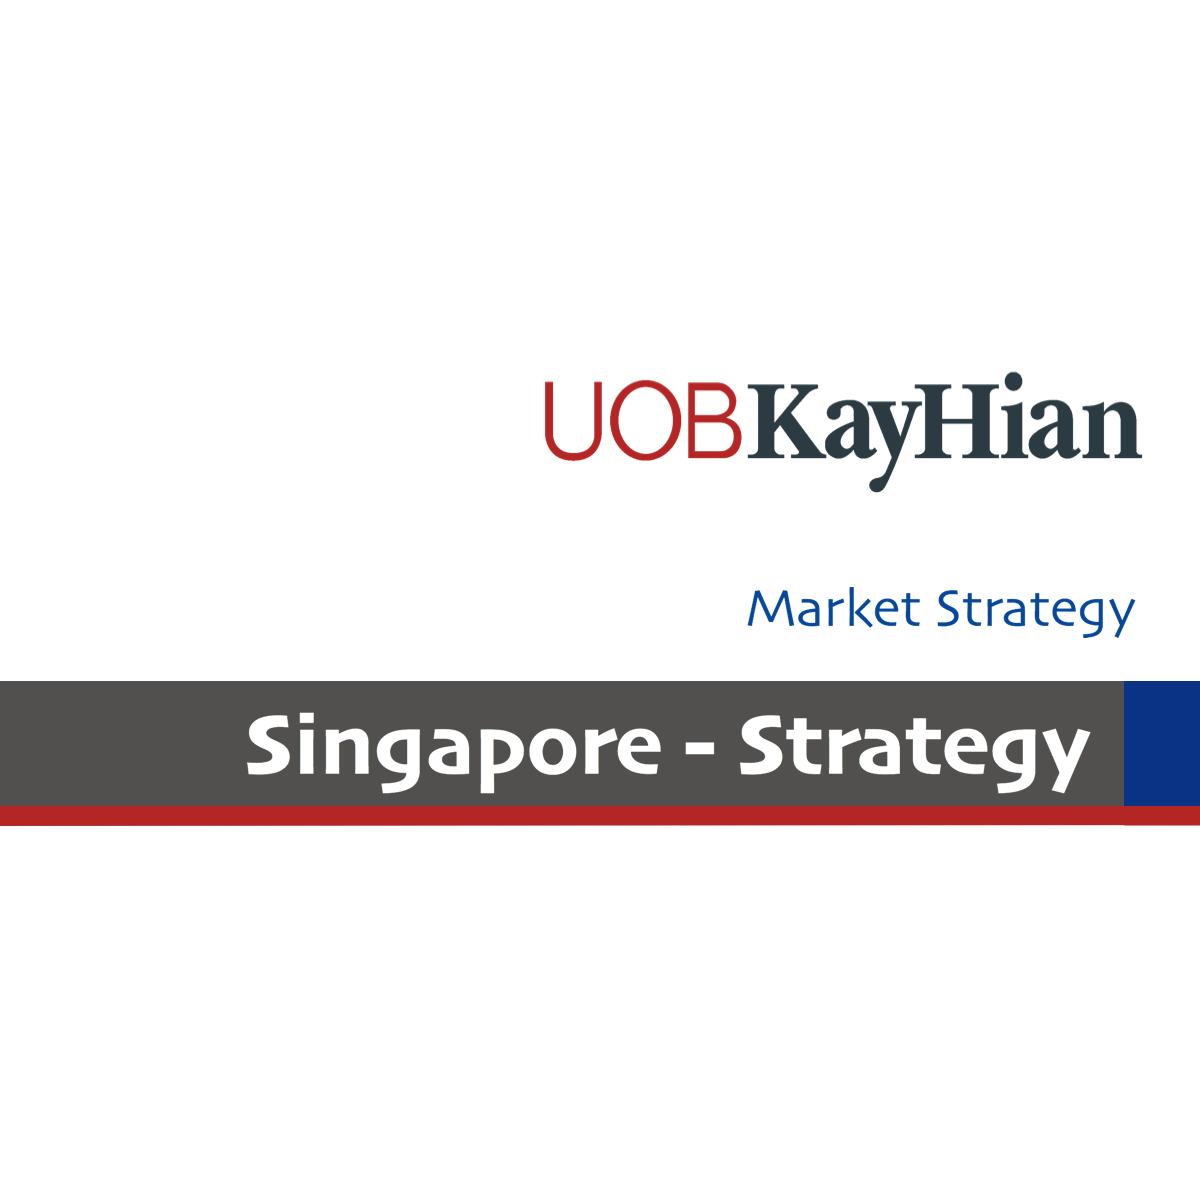 Singapore Stock Strategy - UOB Kay Hian 2018-06-28: Assessing Risk Premium In Volatile Times